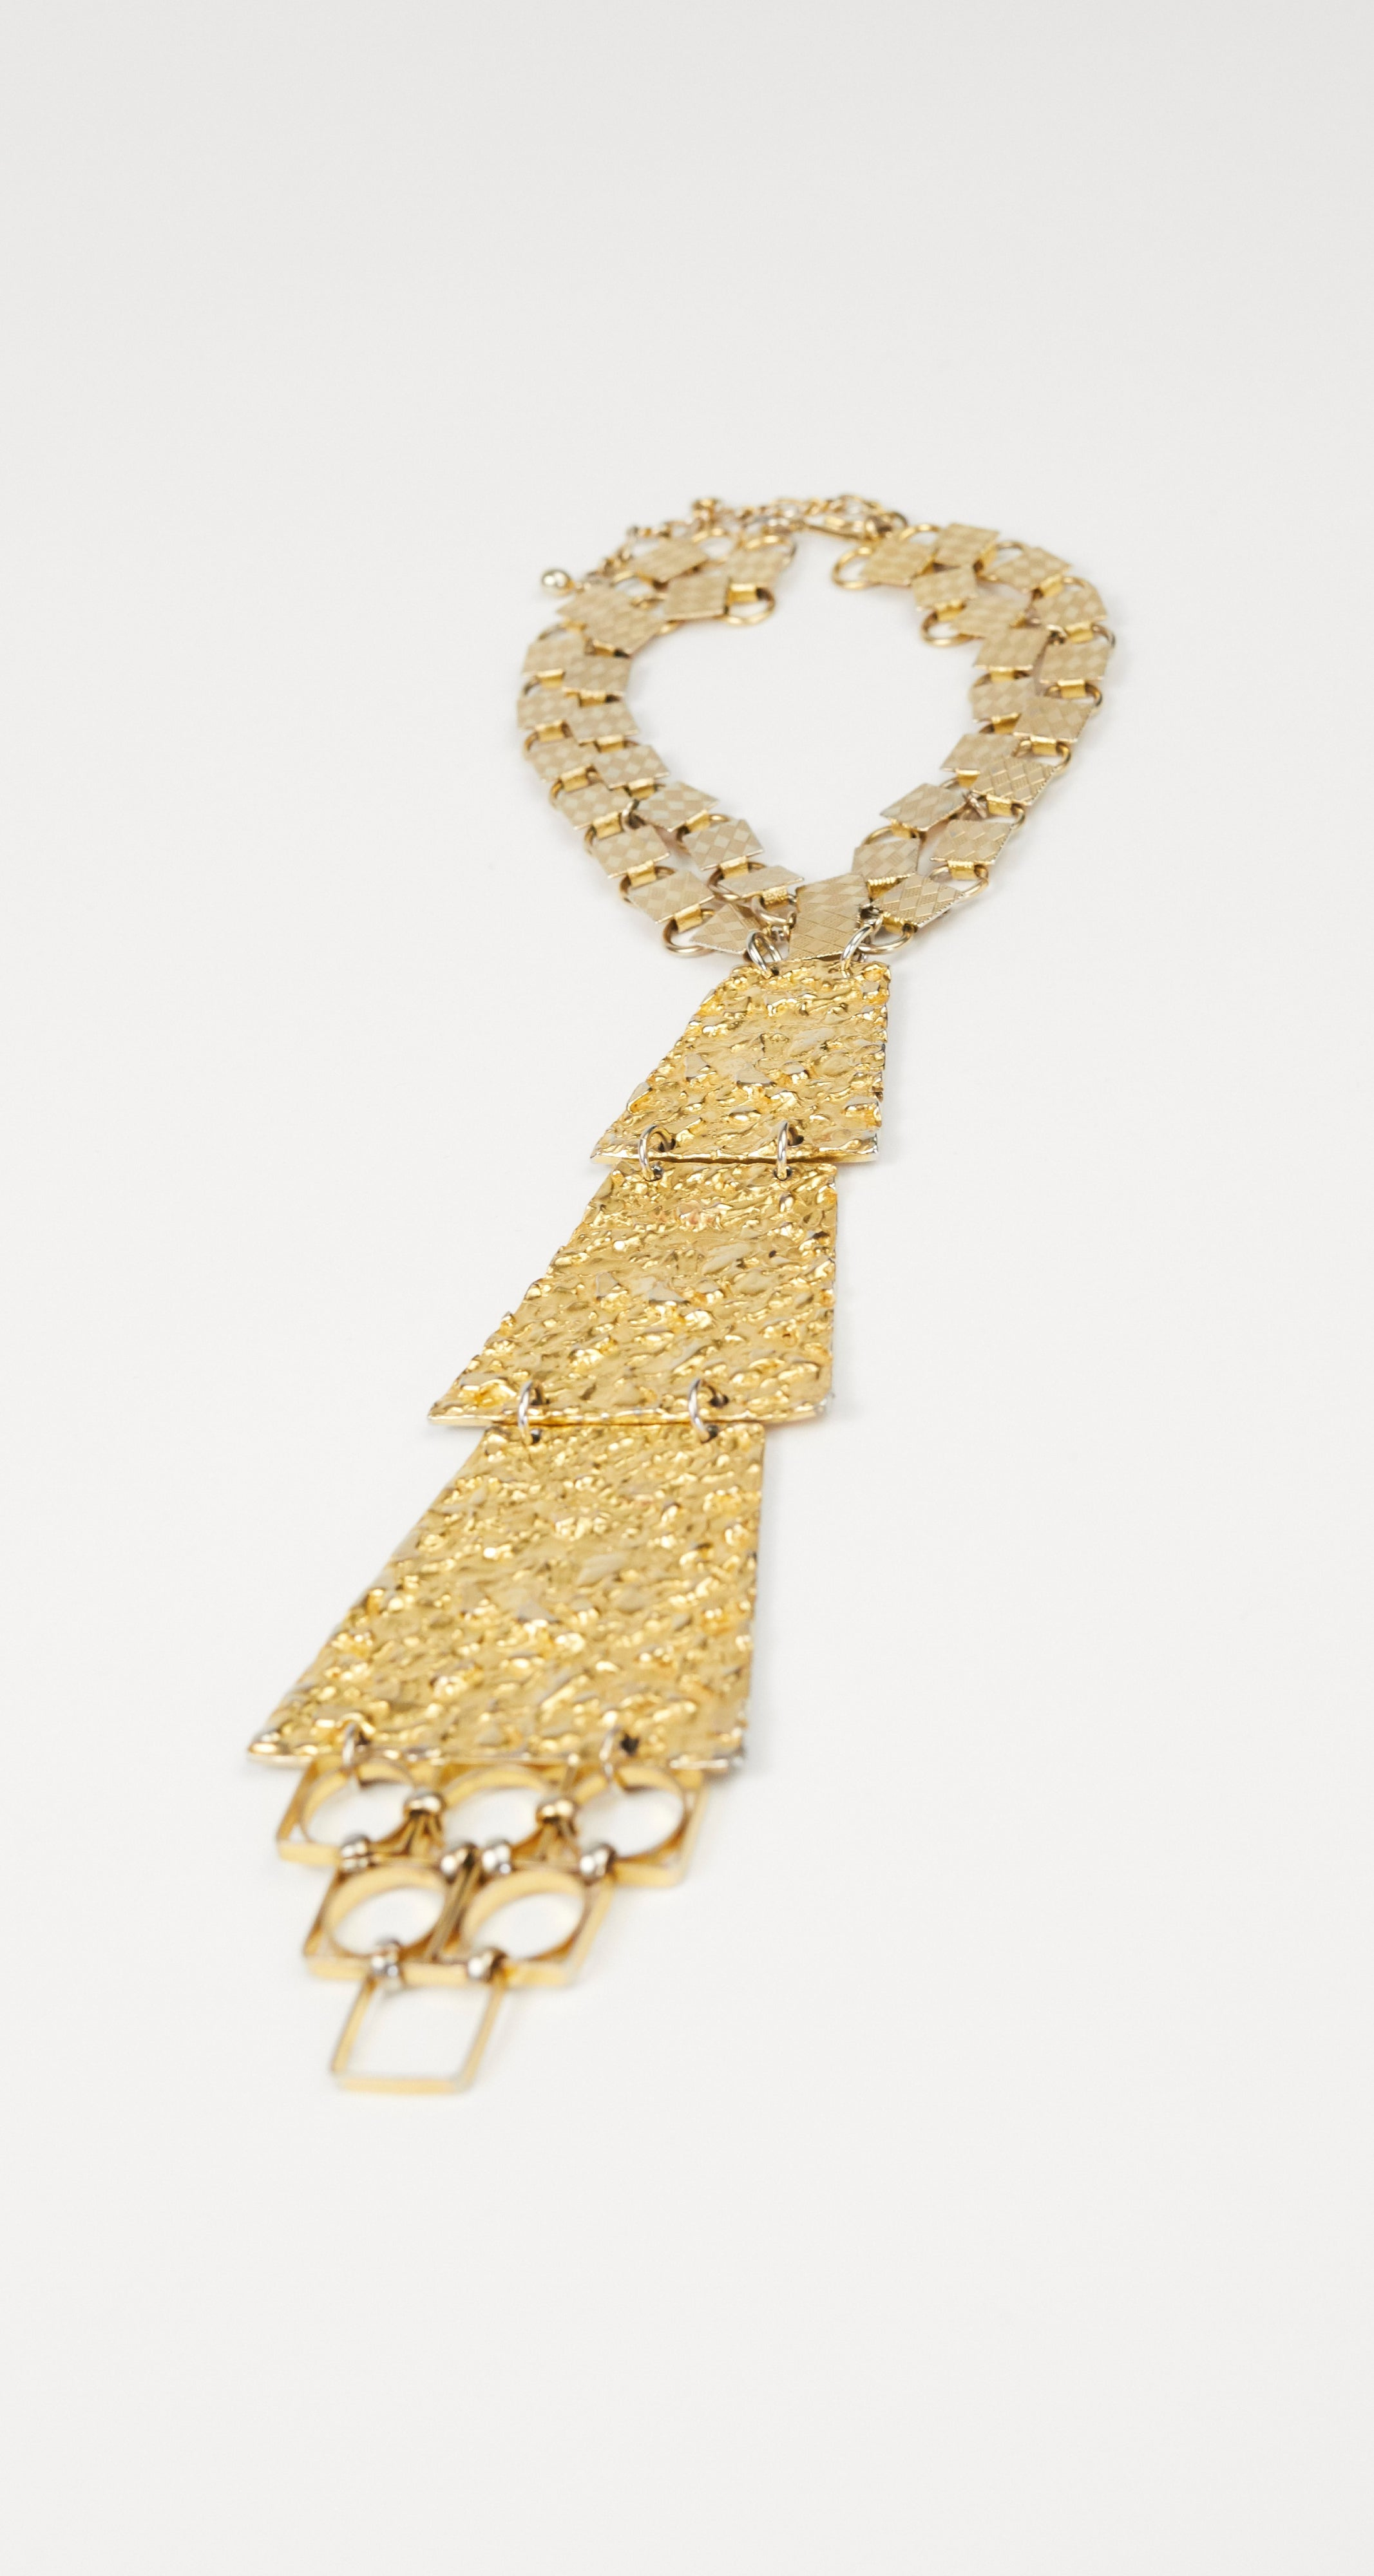 1970s Egyptian Revival Tiered Gold Necklace